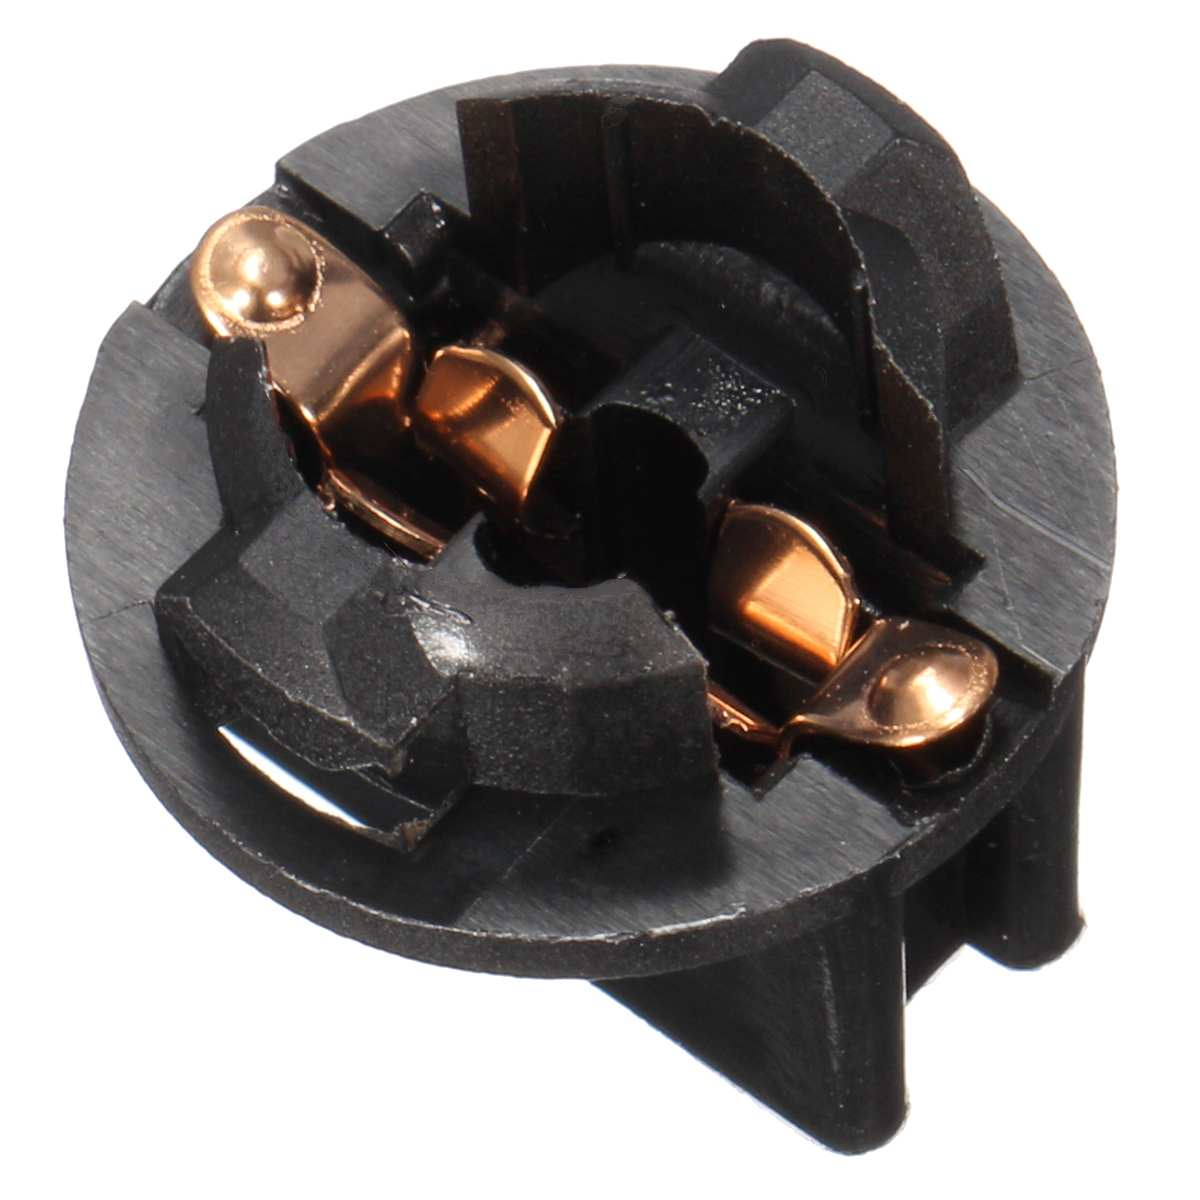 10pc 10.7mm <font><b>T10</b></font> <font><b>Socket</b></font> Car Light Dash Twist Lock Wedge Instrument Panel Base Bulb <font><b>Socket</b></font> Plug Lamp Holder Black image